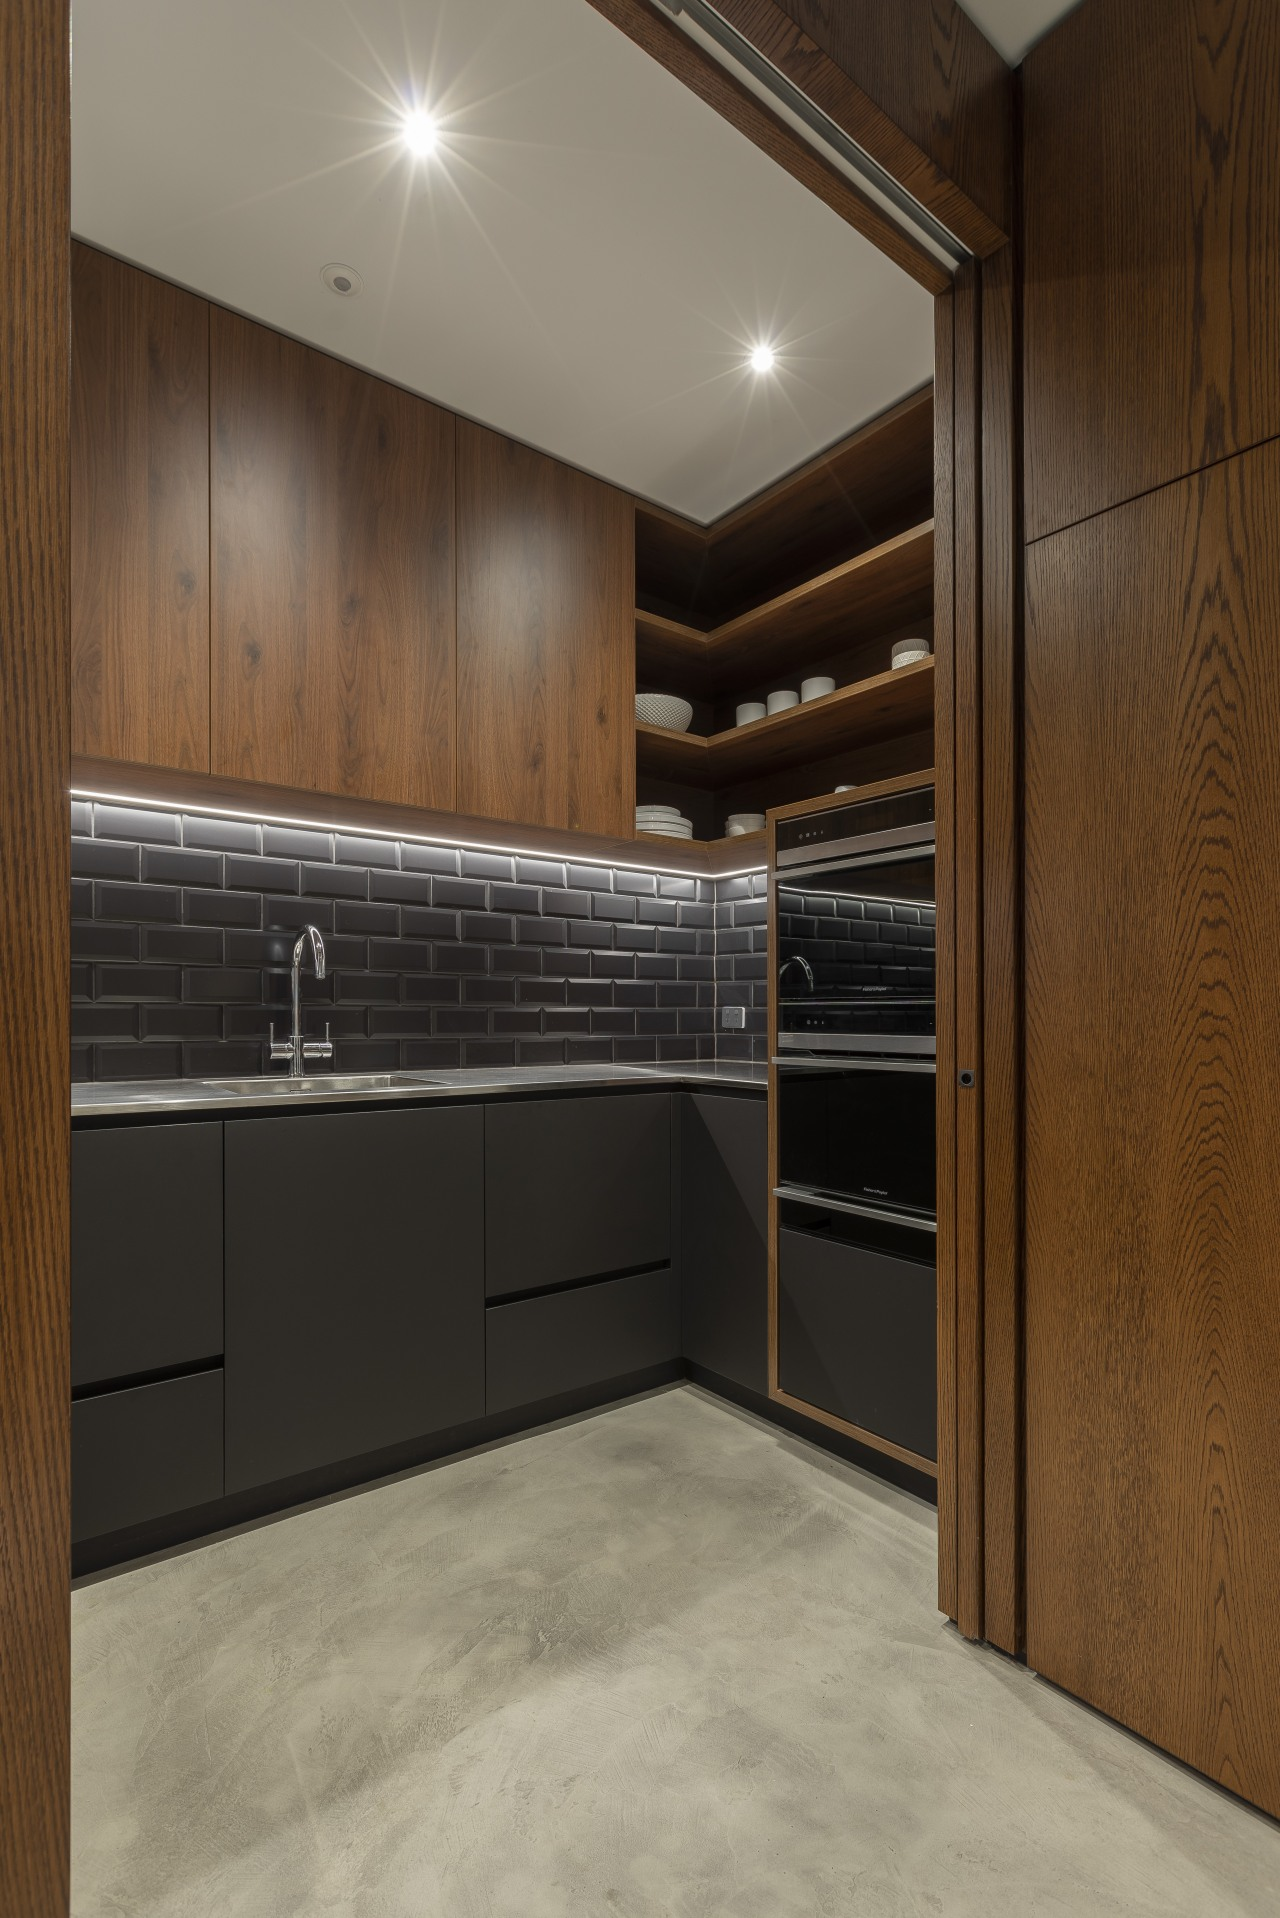 Double cavity slider doors in the same timber architecture, cabinetry, countertop, cupboard, floor, flooring, furniture, home, house, interior design, kitchen, sliding door,  cube dentro, scullery, appliances